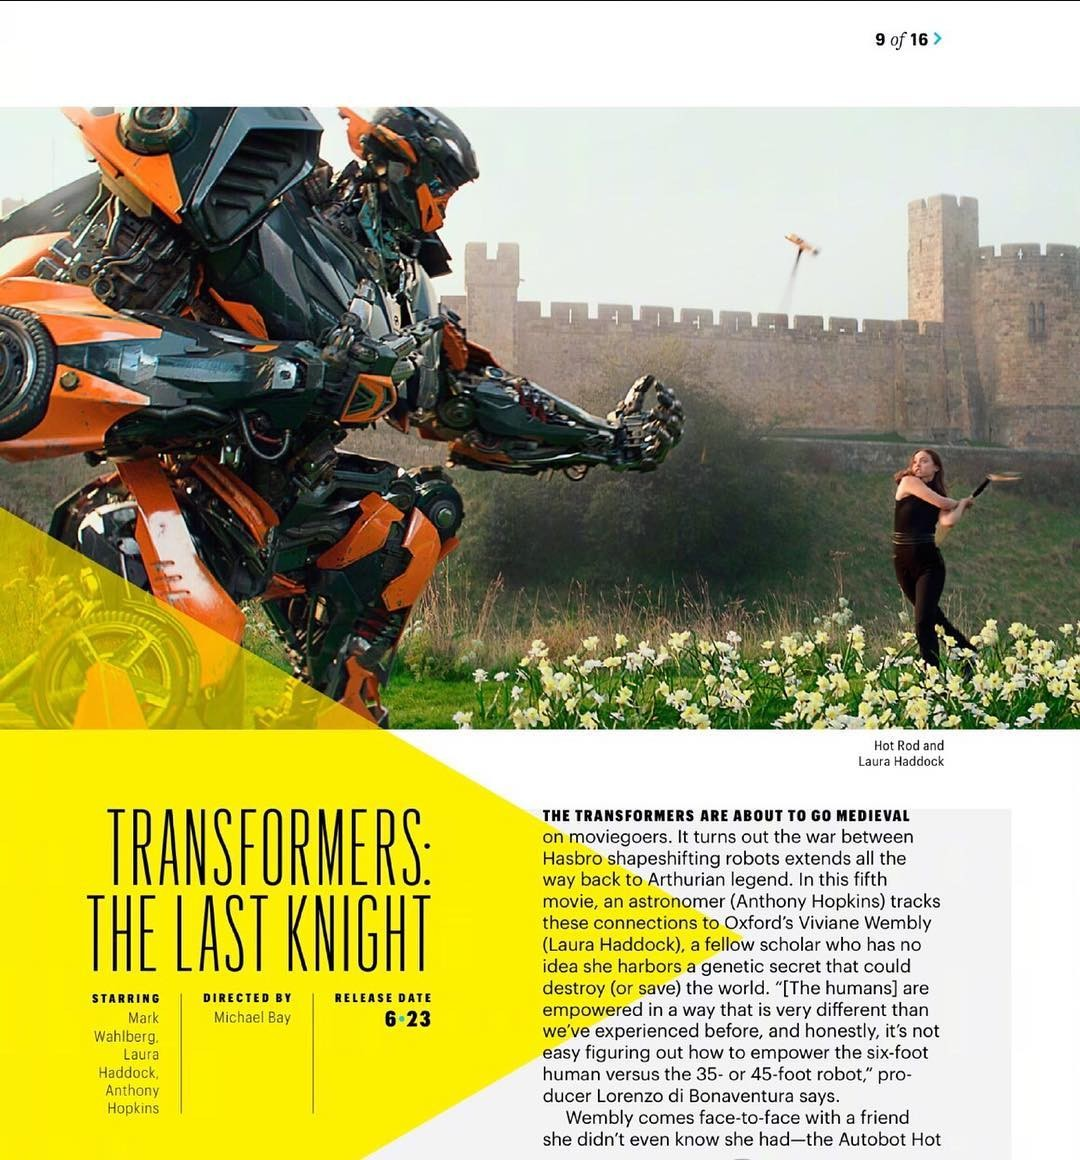 Transformers News: New Image of Hot Rod from Transformers: the Last Knight